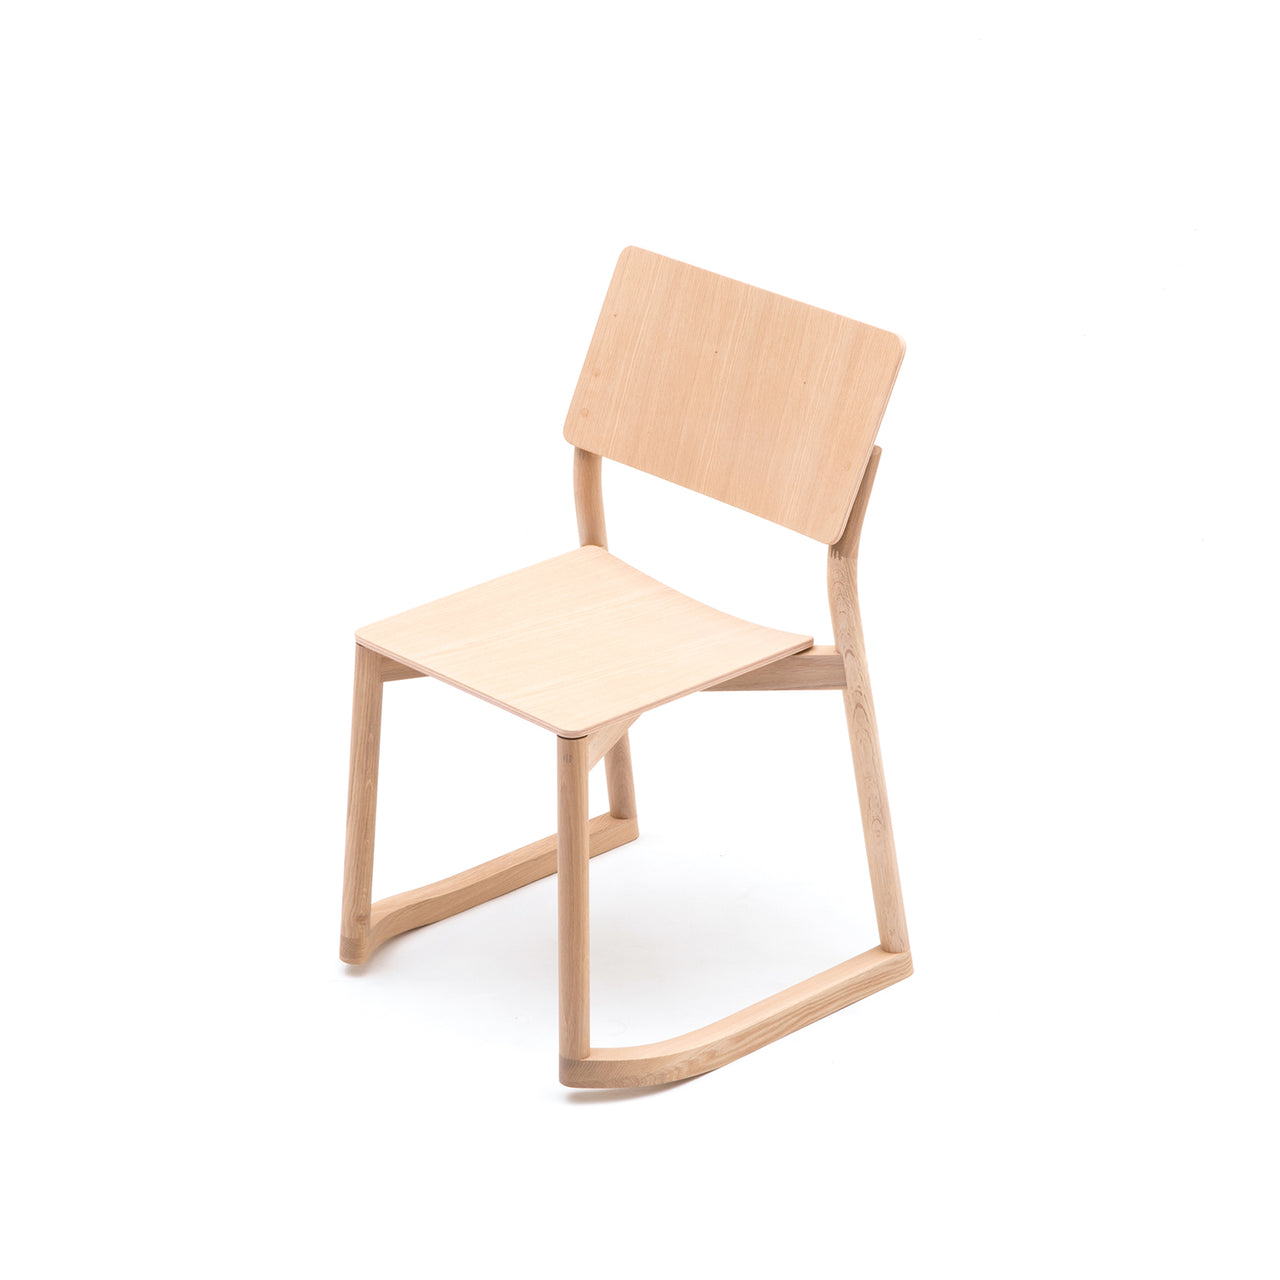 Peachy Panorama Chair With Runners Buy Karimoku New Standard Onthecornerstone Fun Painted Chair Ideas Images Onthecornerstoneorg